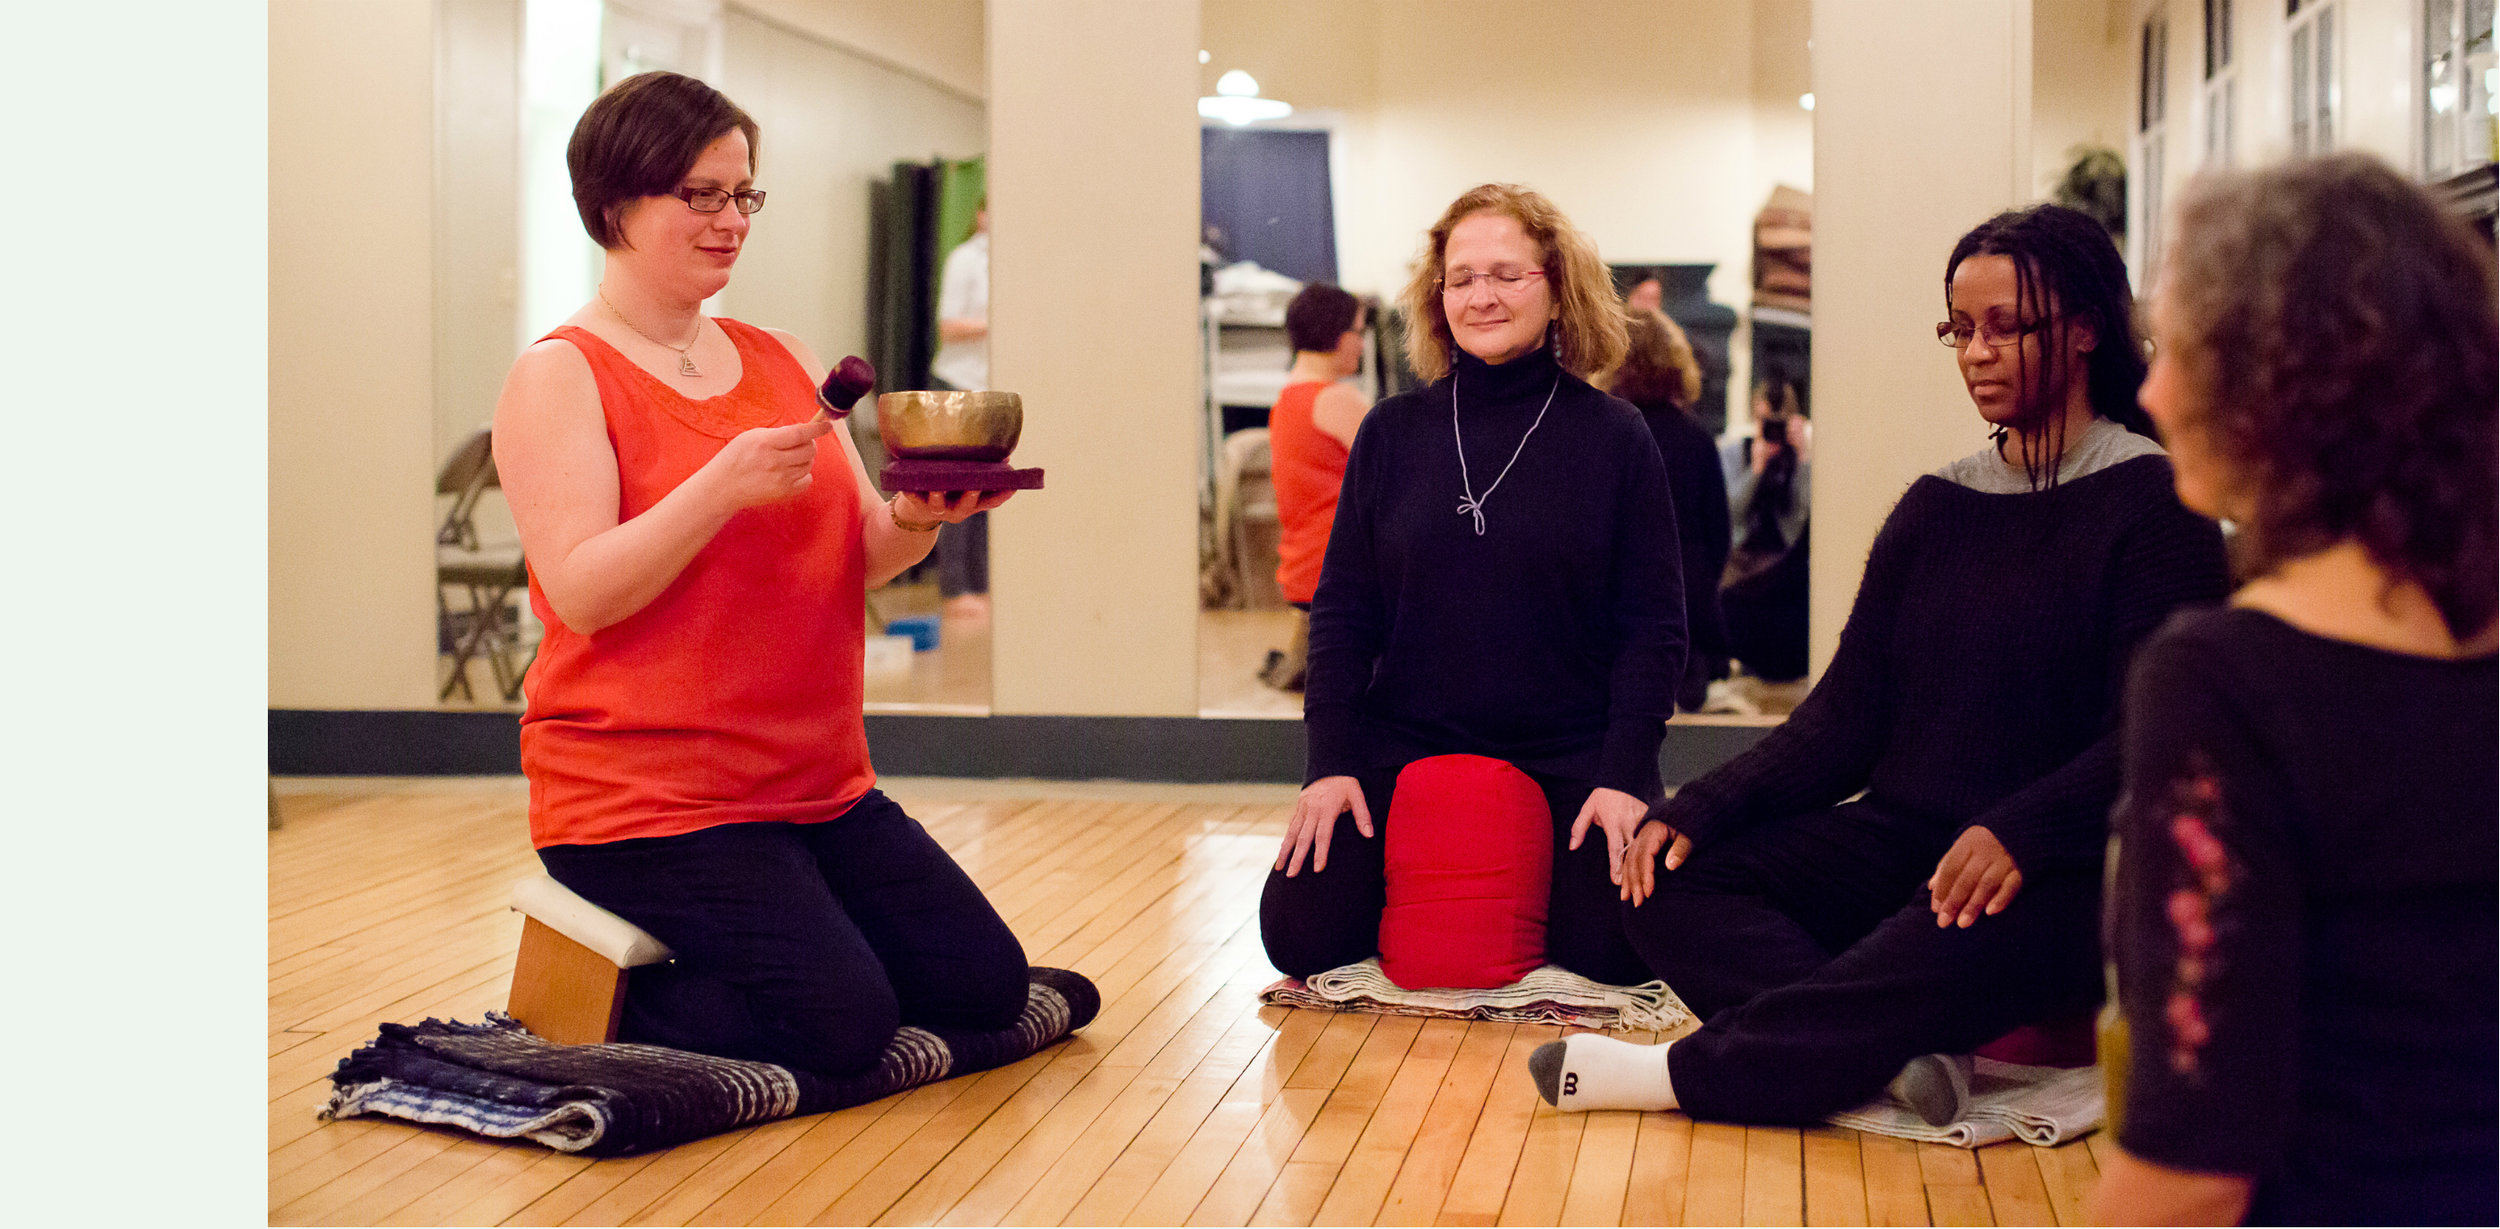 At Our Studio Locations - Most beginners start with The Meditation Toolbox Course. But we also offer free Community Meditation Nights for those who want a complimentary taste of meditation before committing to attend the six-week course.You can start with either one of these two introductory programs that are upcoming on our calendar.